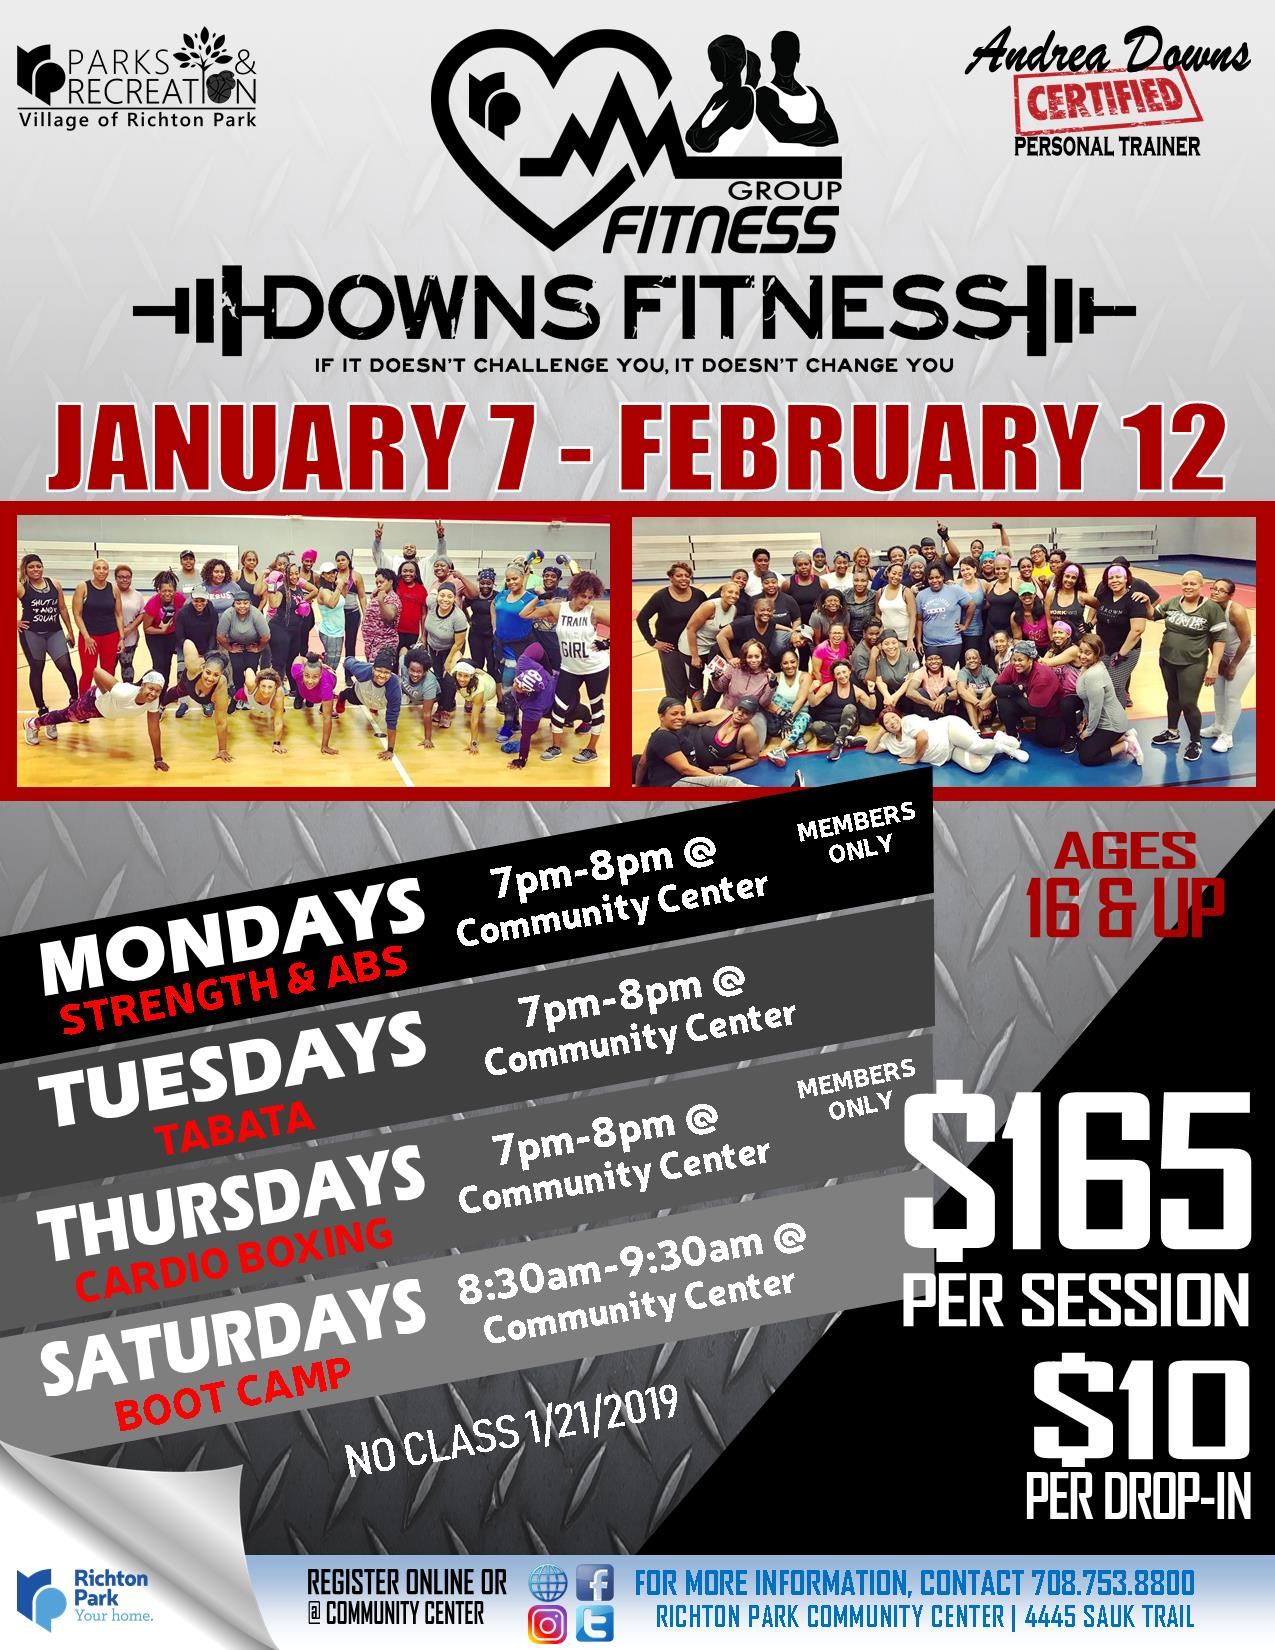 Group Fitness - Downs Fitness WINTER 2019